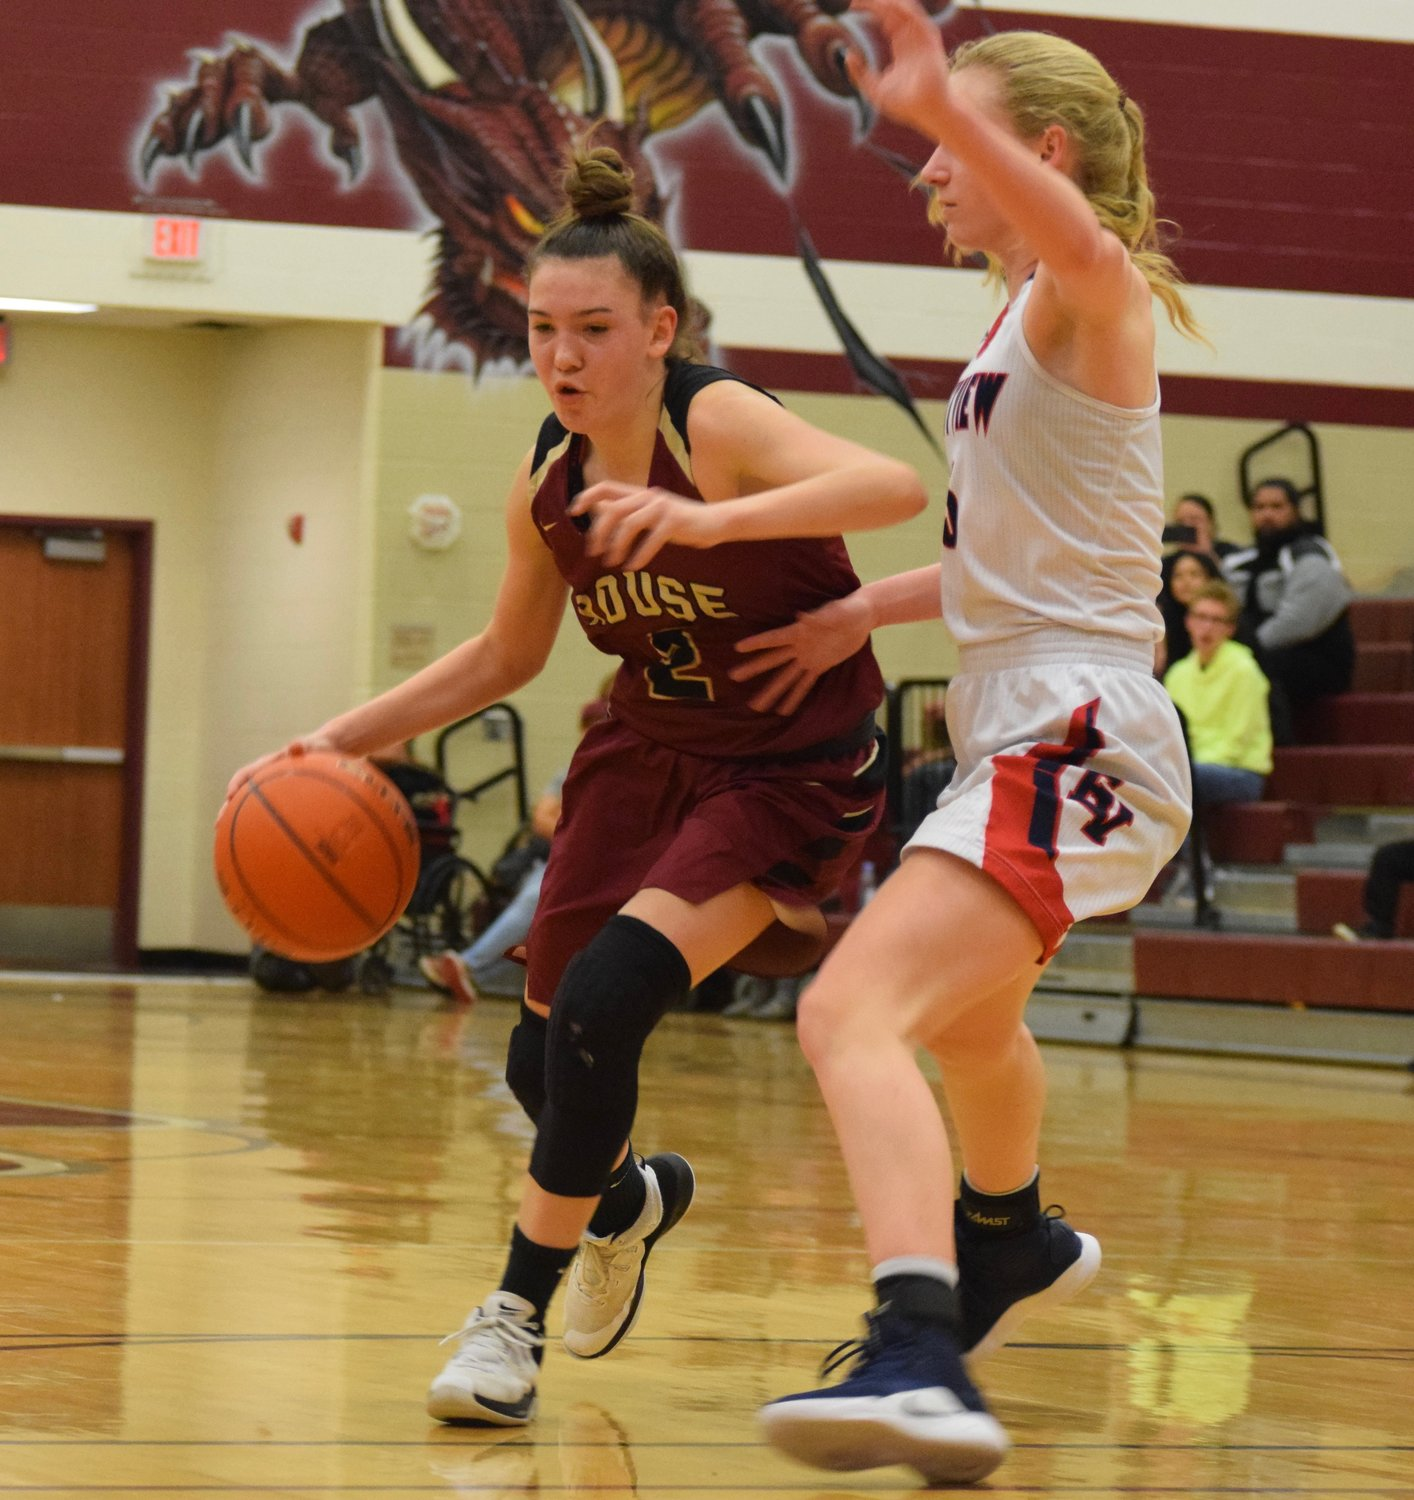 Cailyn Kieper and Rouse lost to East View 35-30 in the first round of the playoffs Monday night at Round Rock High School.